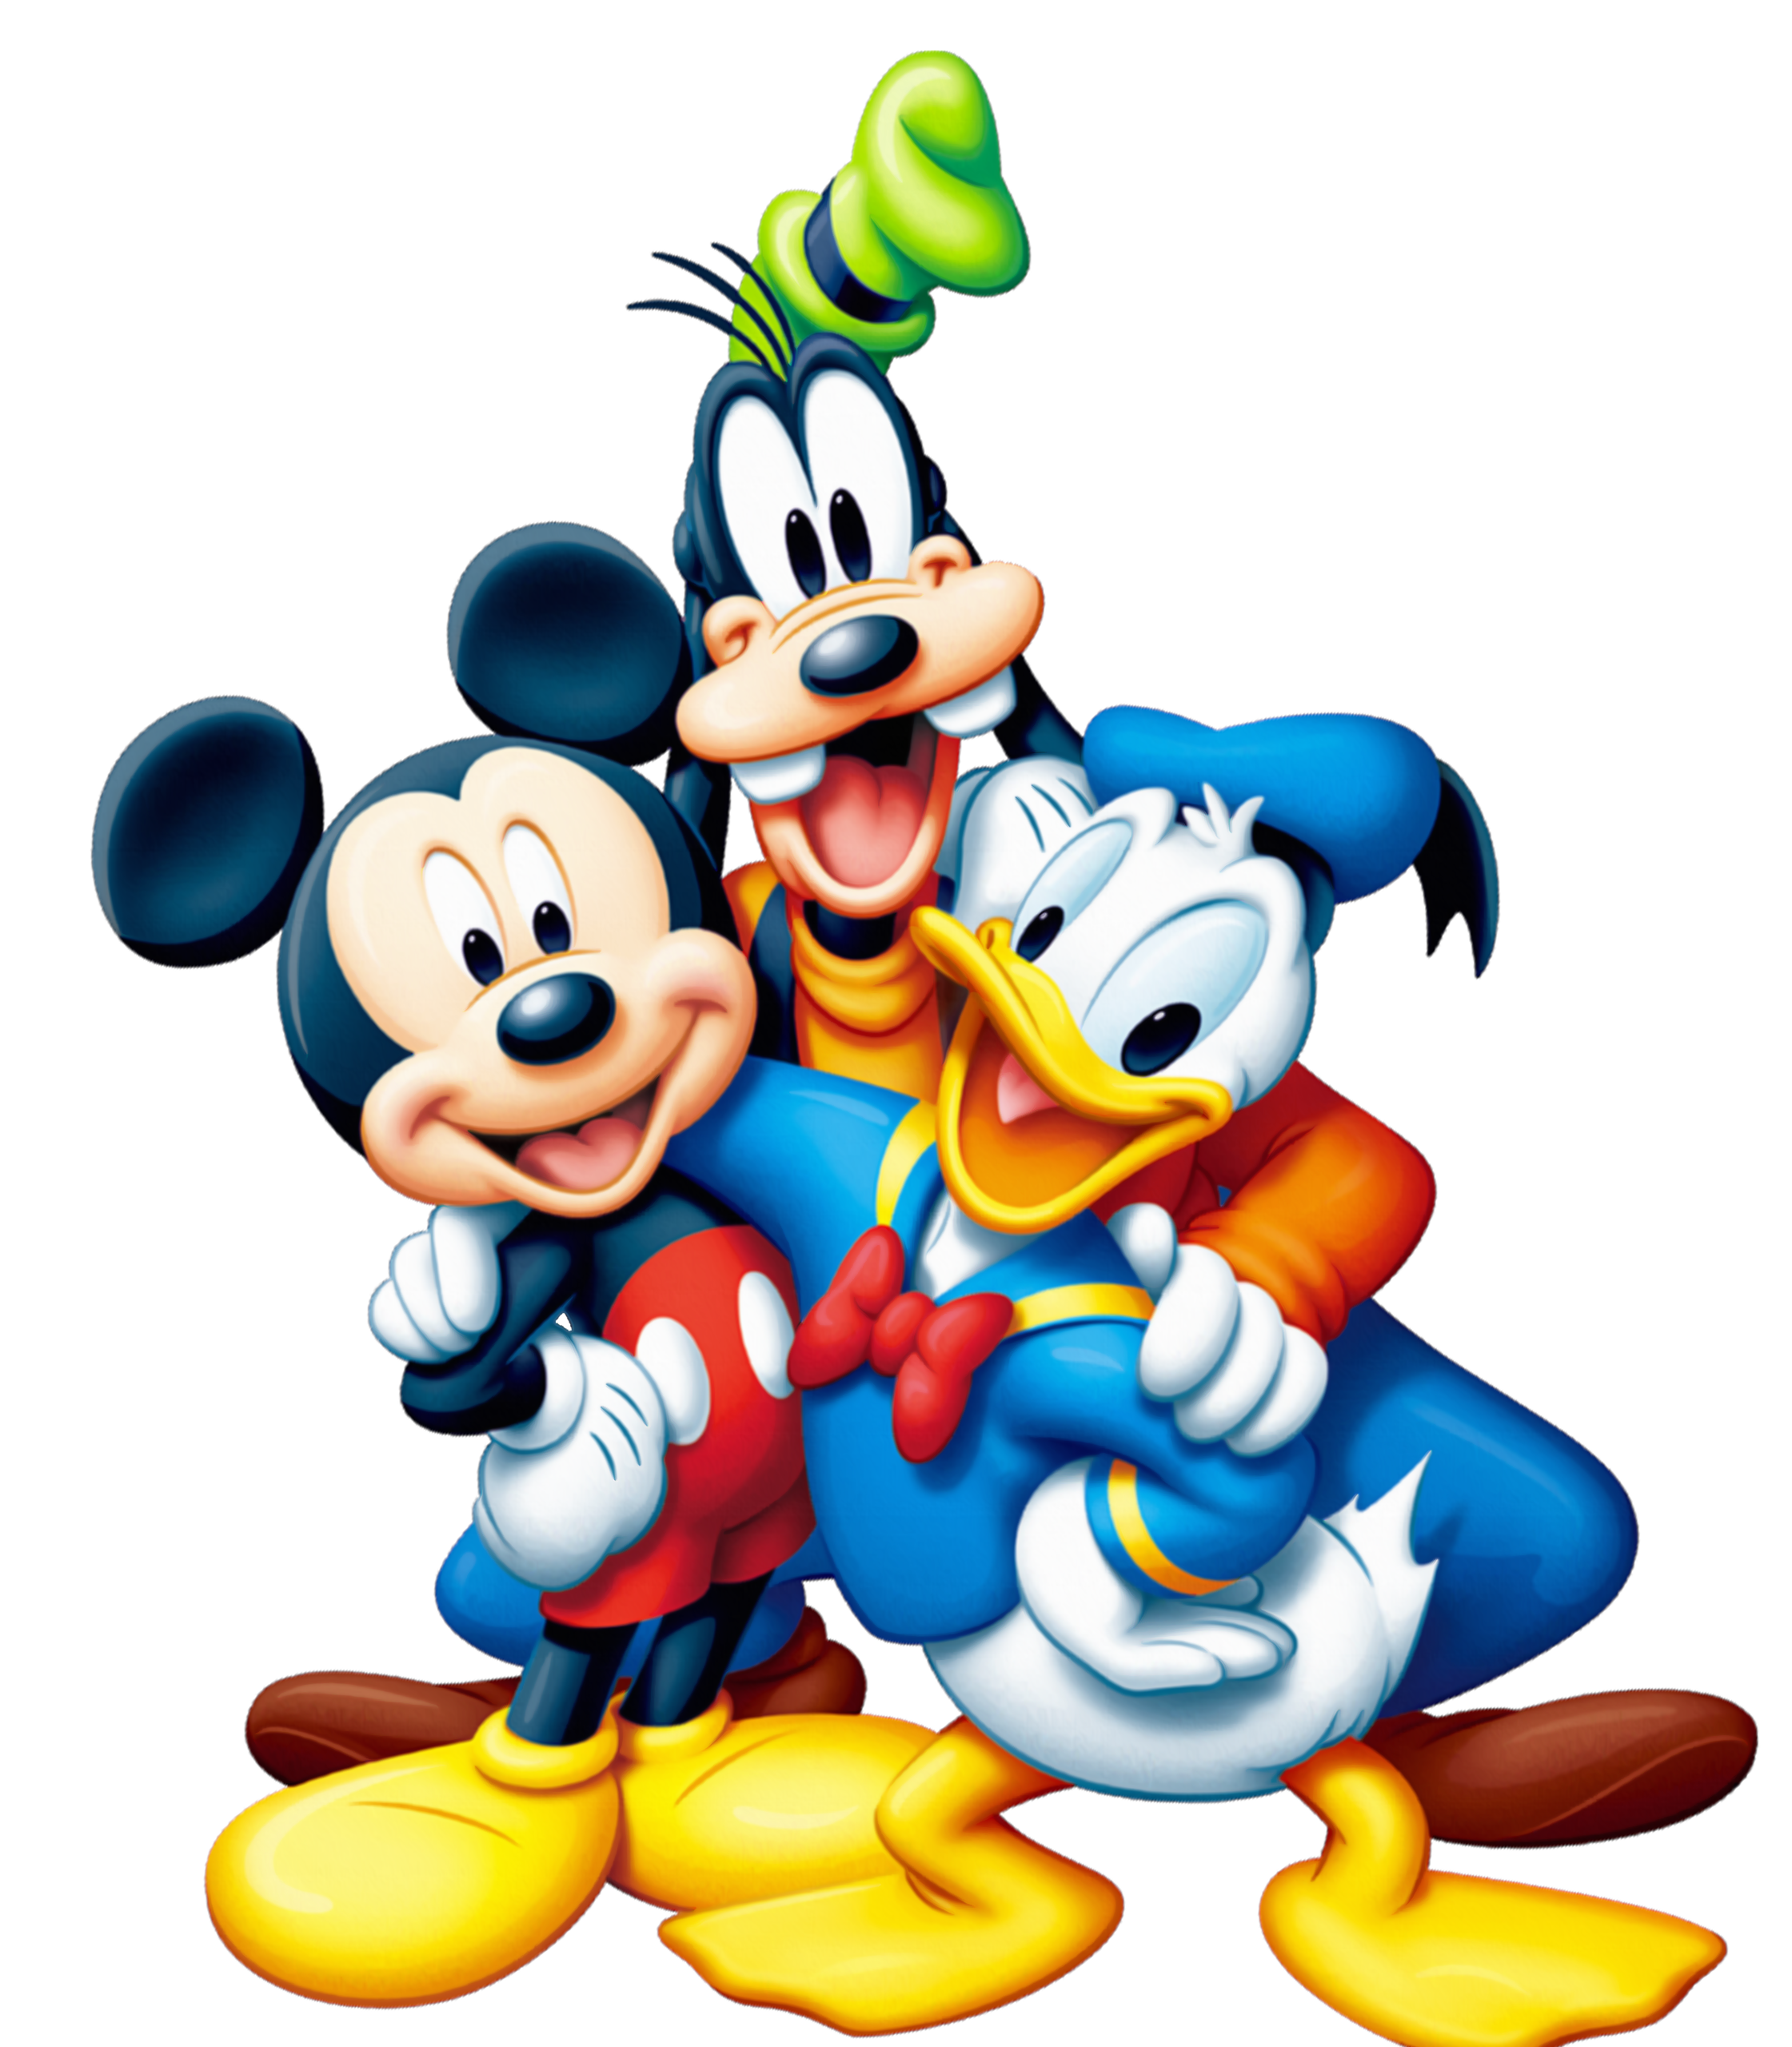 Mickey Mouse And Friends Backgrounds, Compatible - PC, Mobile, Gadgets| 2241x2560 px